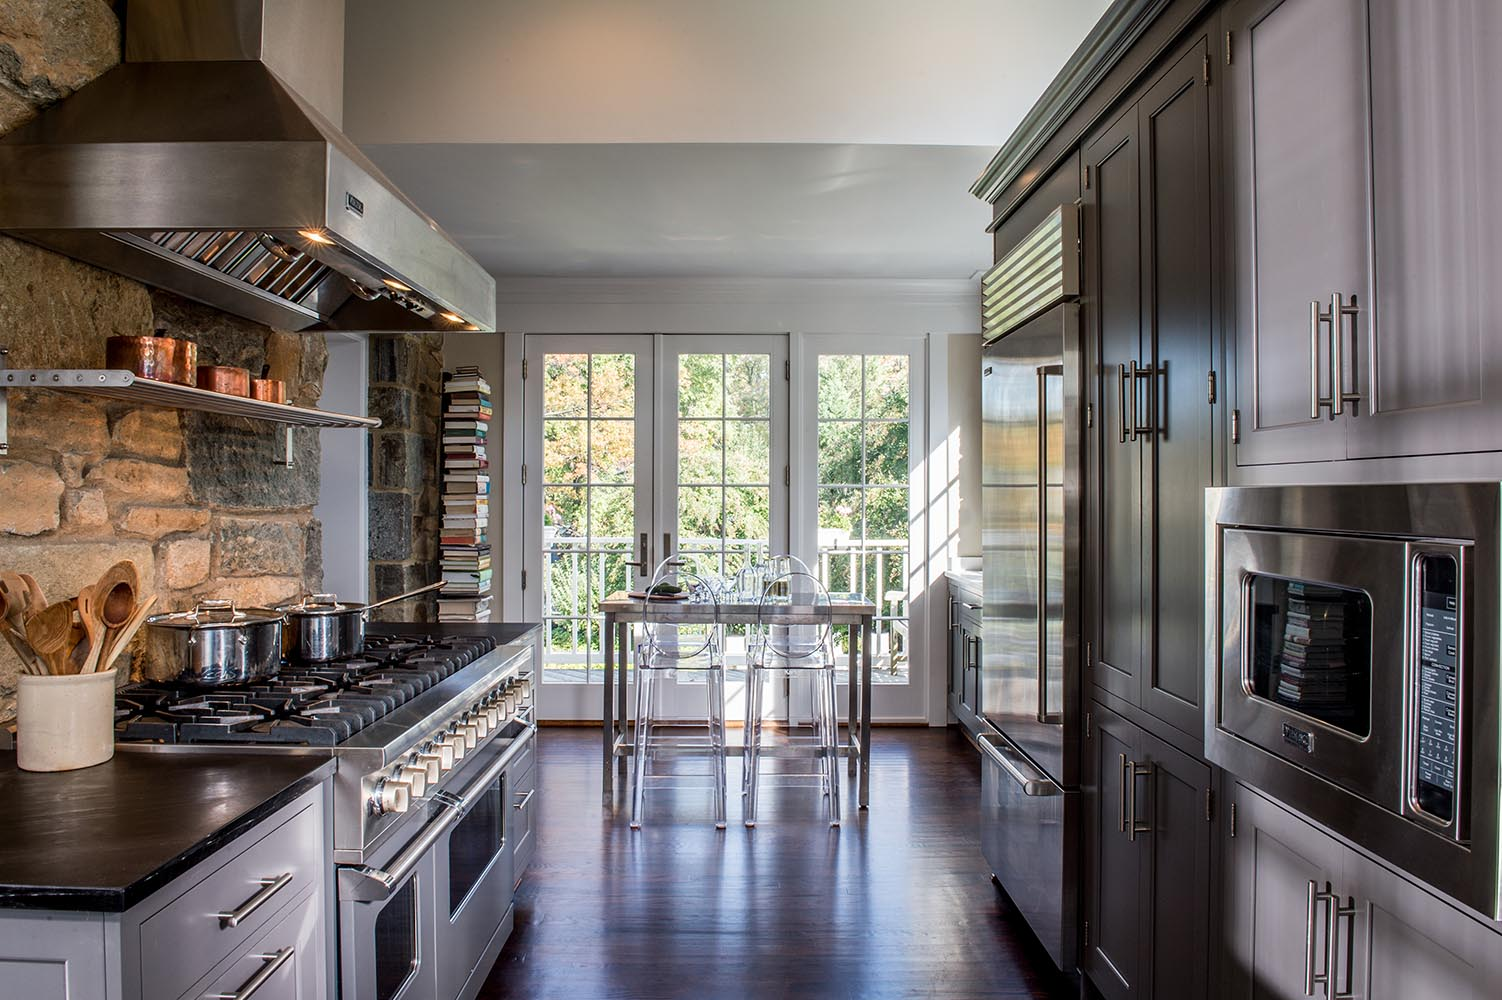 Chevy Chase Kitchen Remodel Pagenstecher Group